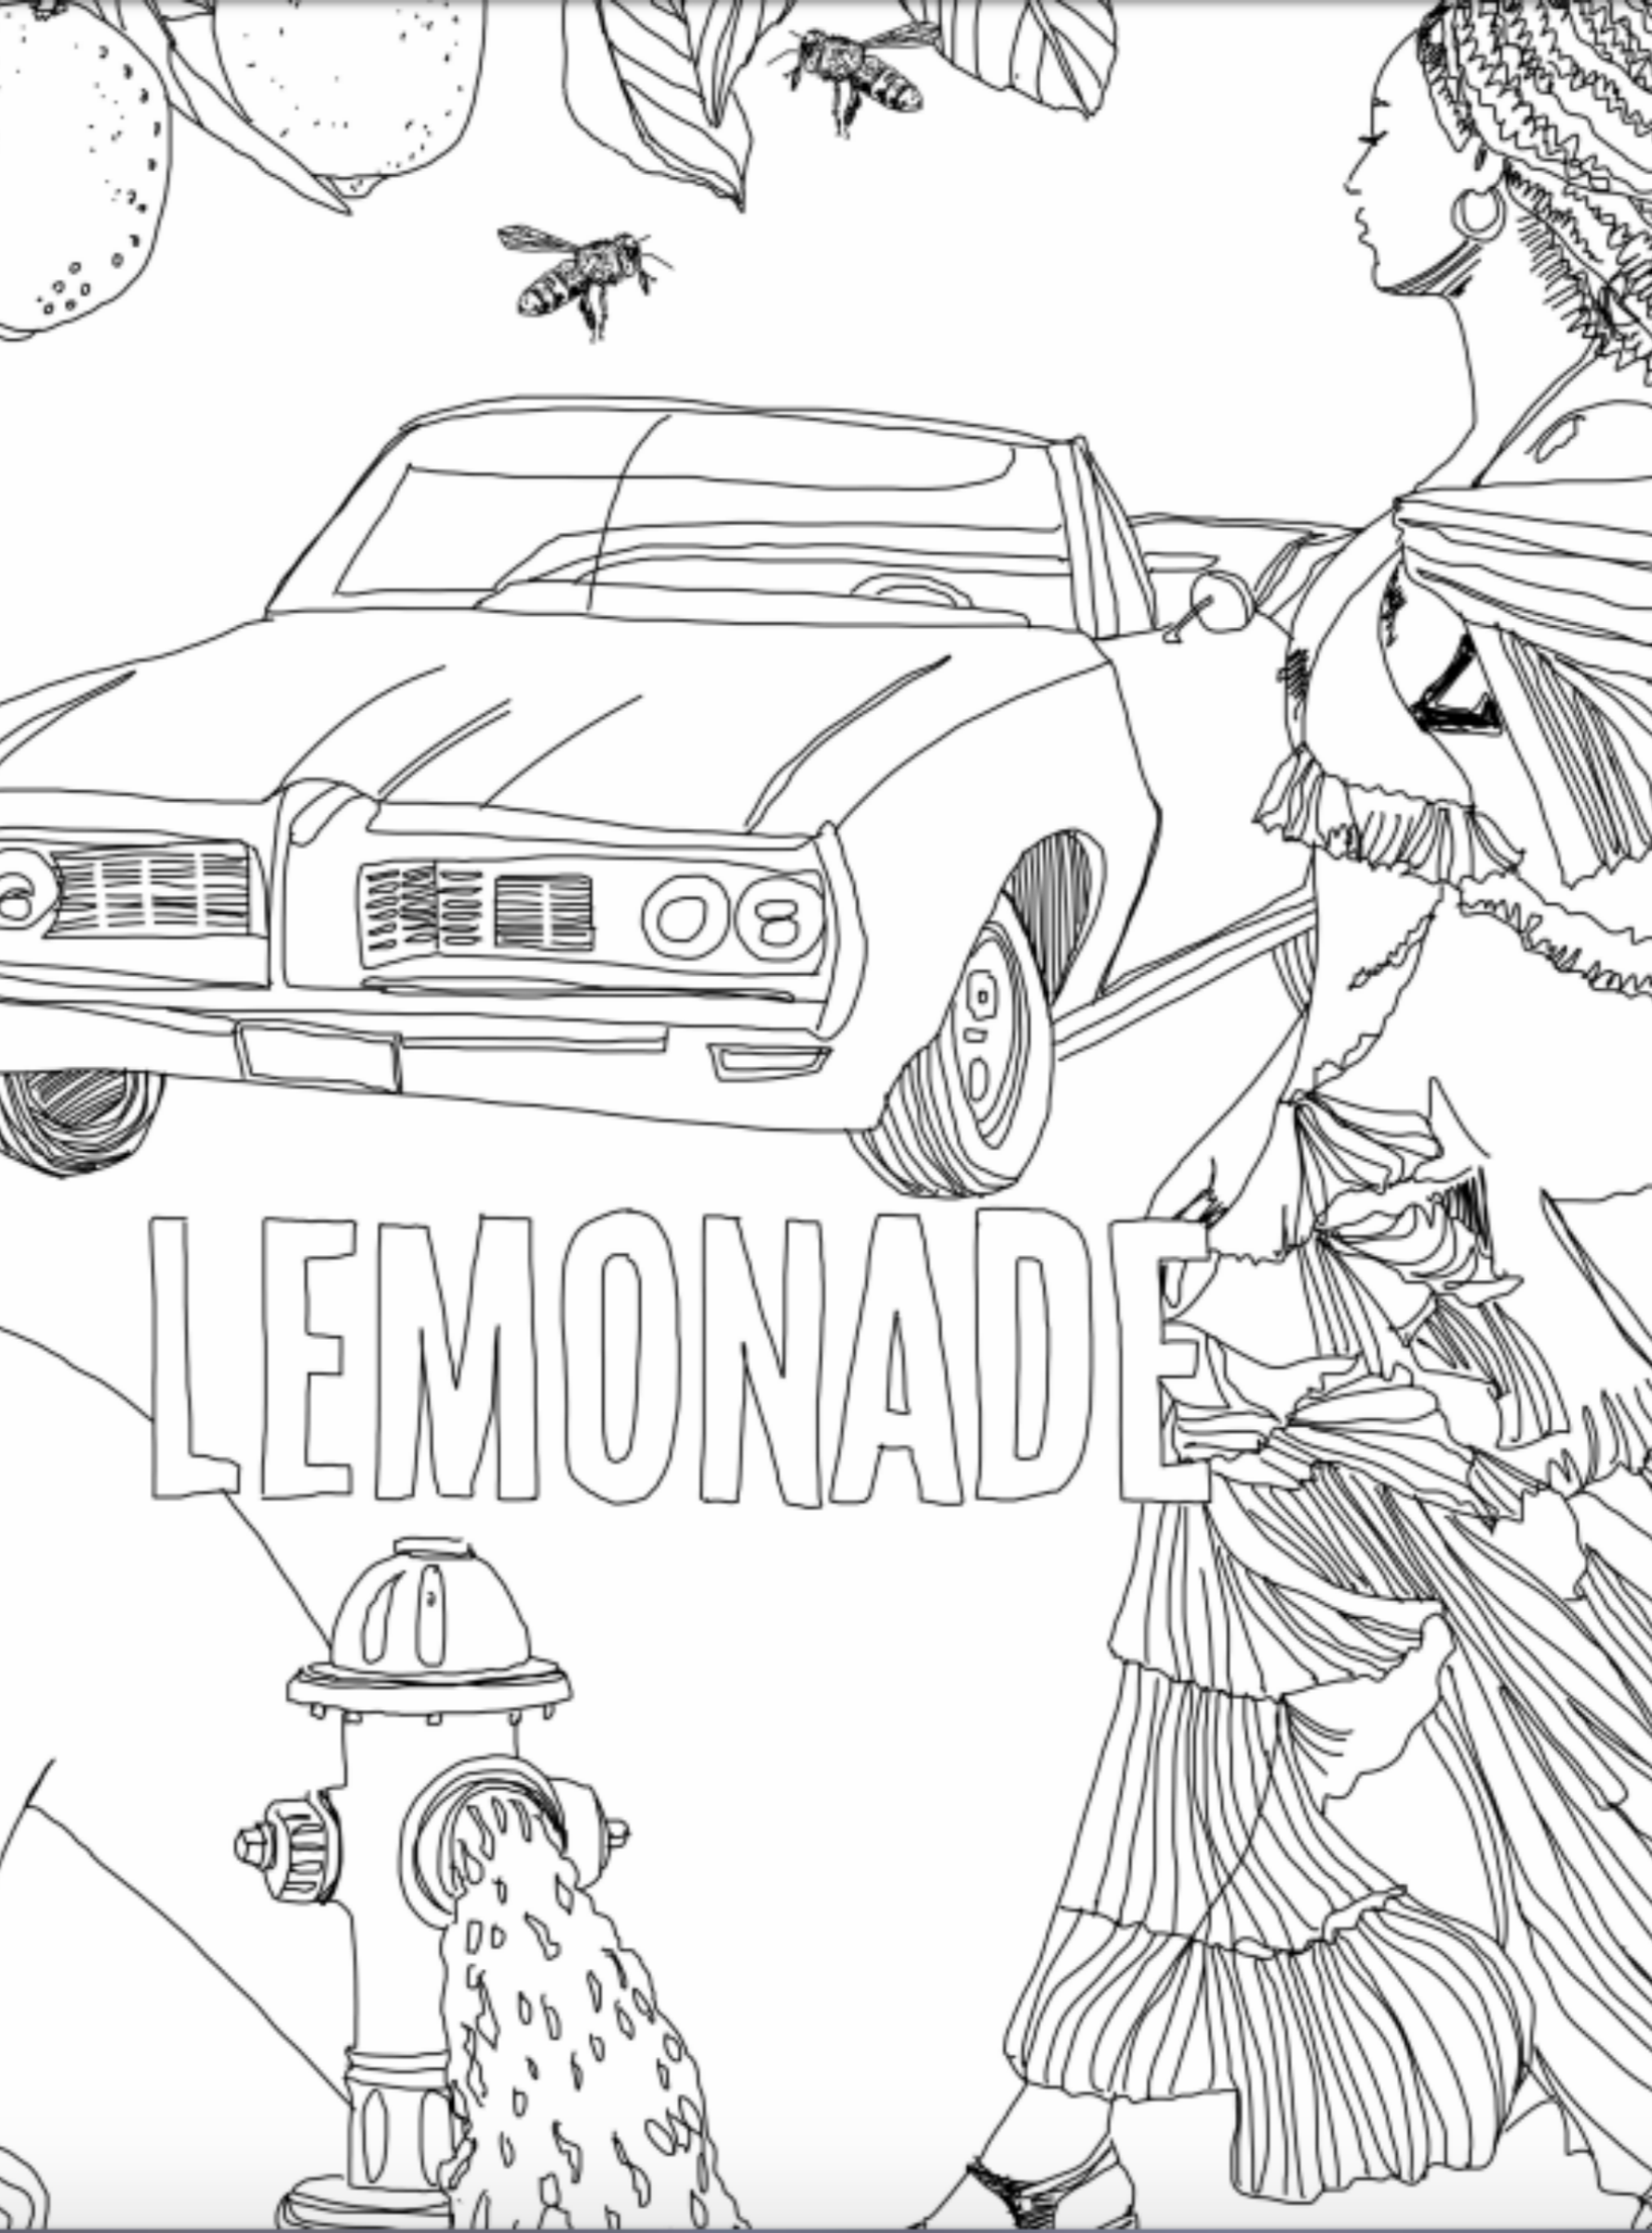 beyonce coloring pages coloring home rh coloringhome com Beyonce Lemonade Booklet Beyonce Lemonade Diet